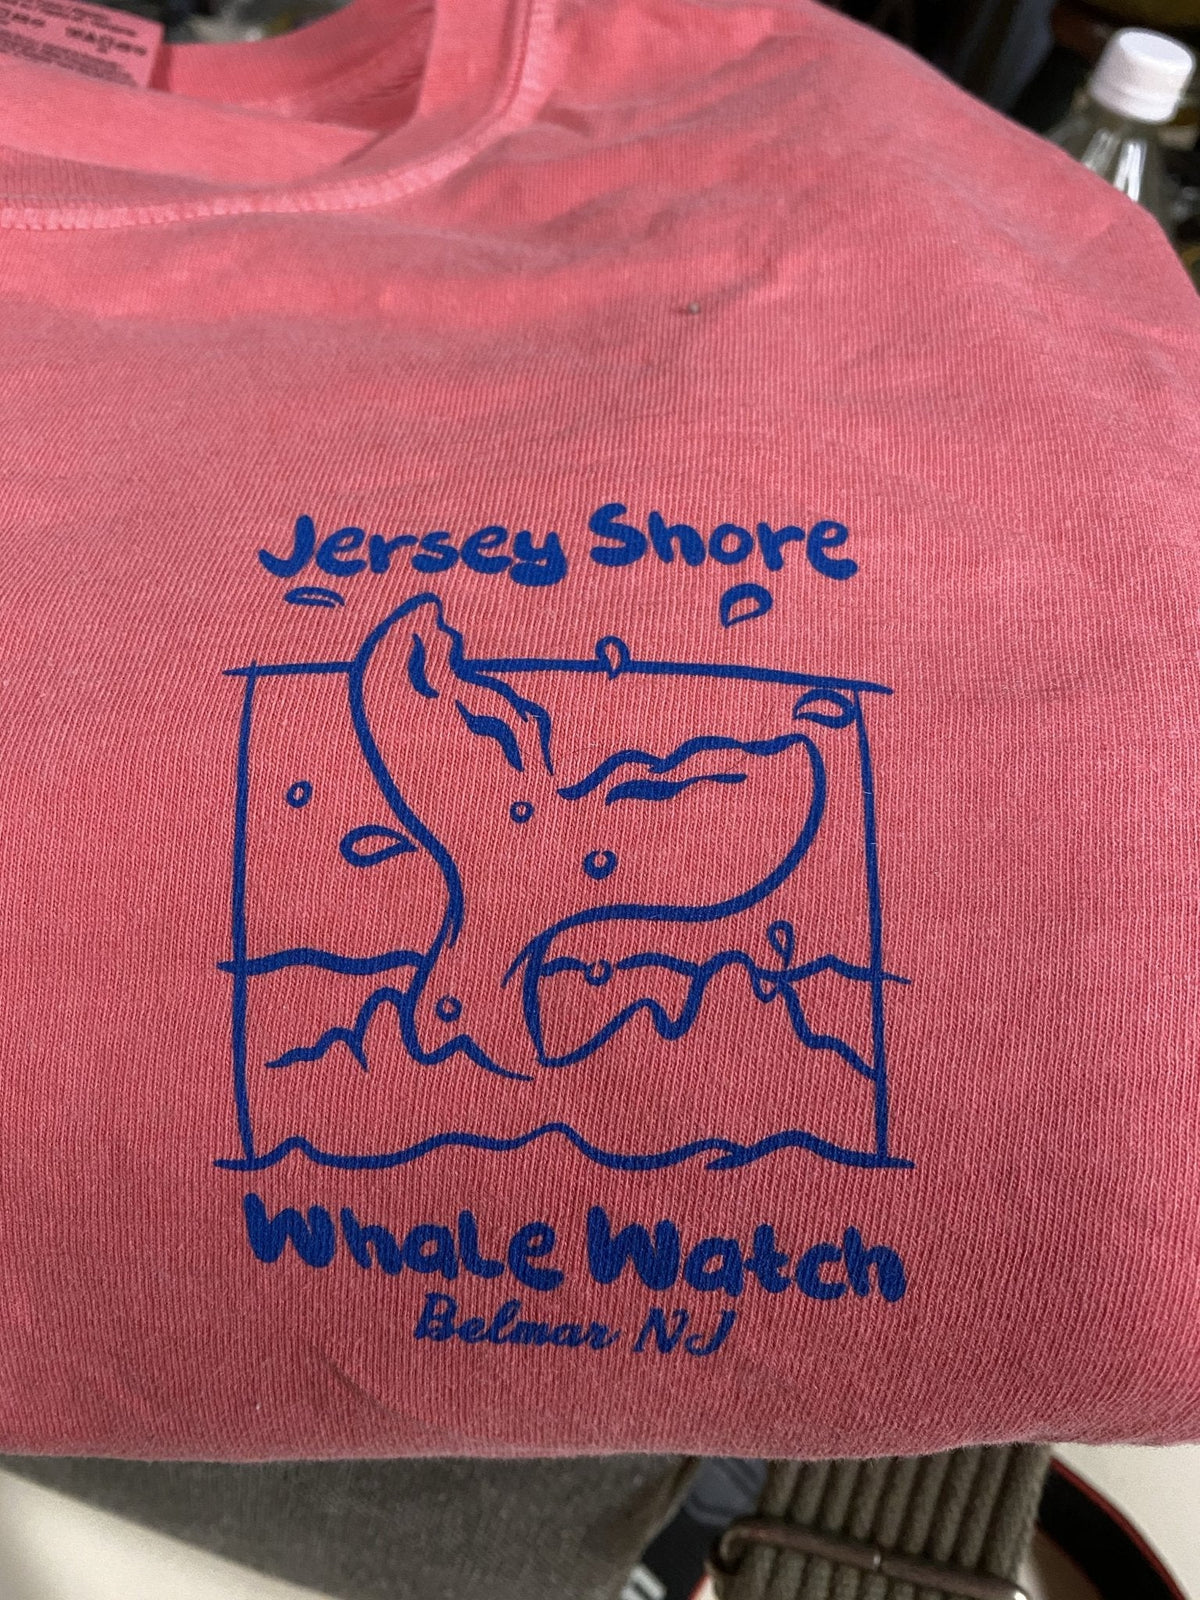 Jersey Shore Whale Watch Tshirt Hooded Long Sleeve - Bill McKim Photography -Jersey Shore whale watch tours